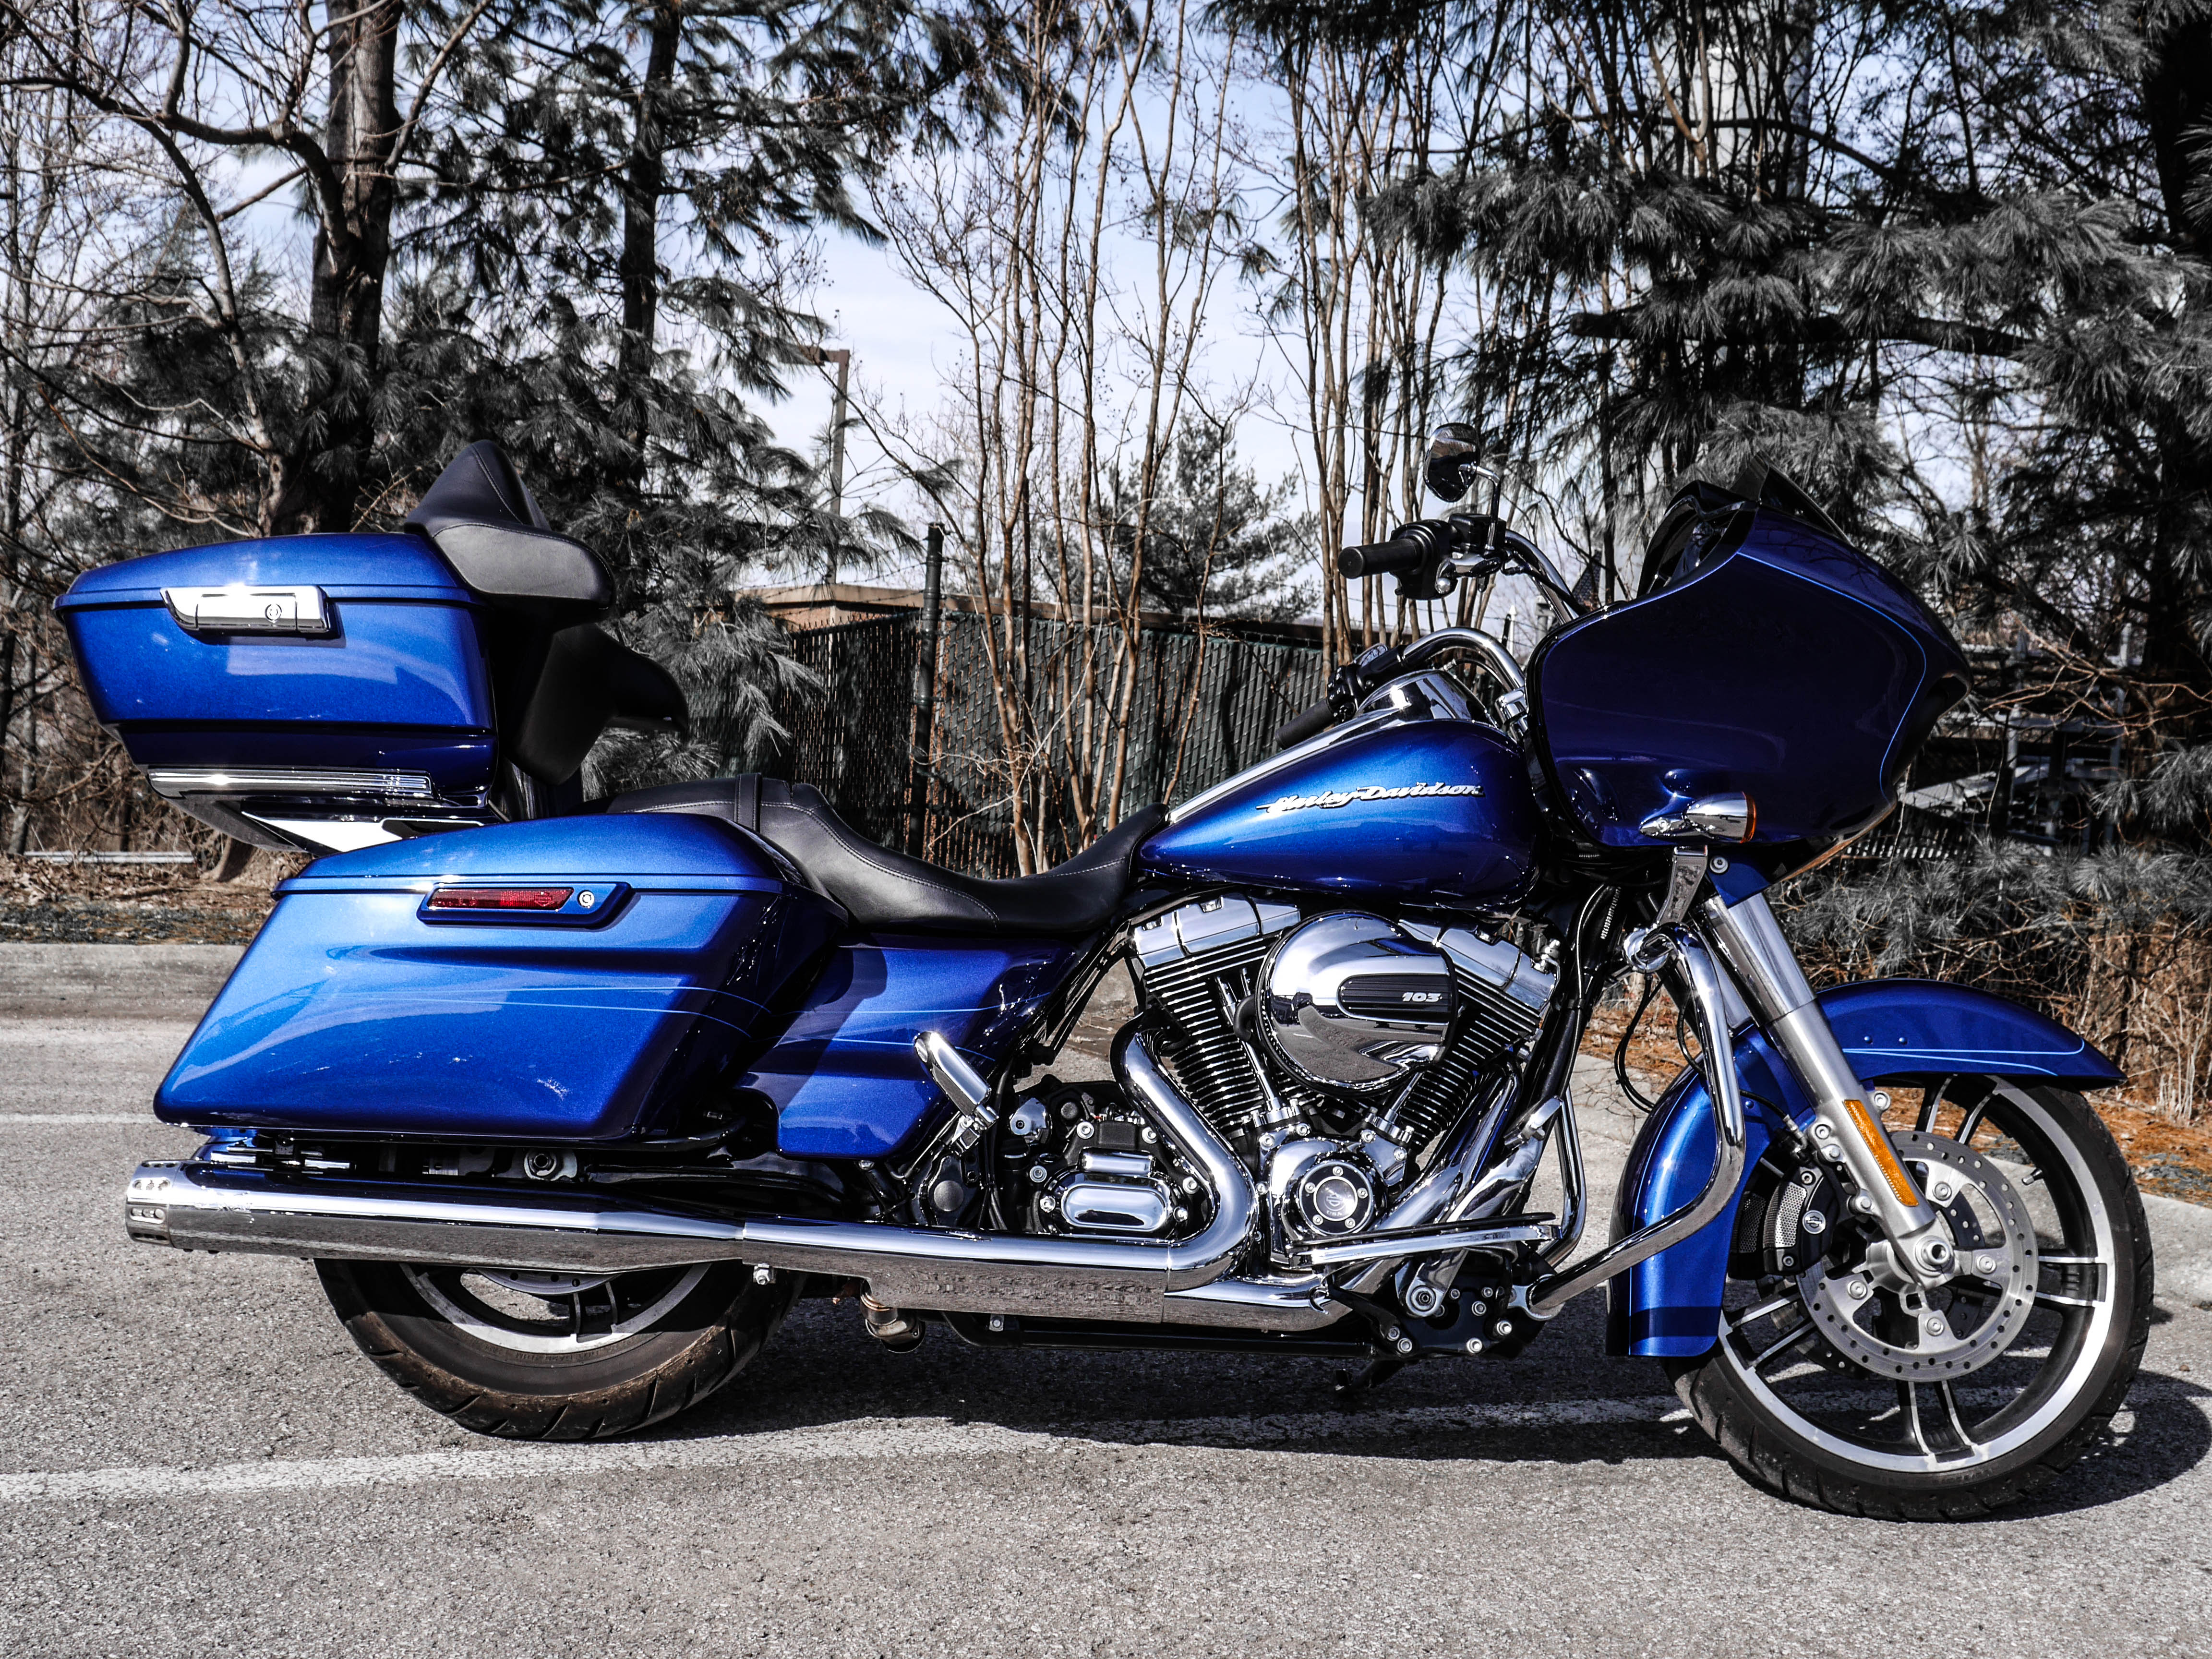 Pre-Owned 2015 Harley-Davidson Touring Road Glide Special